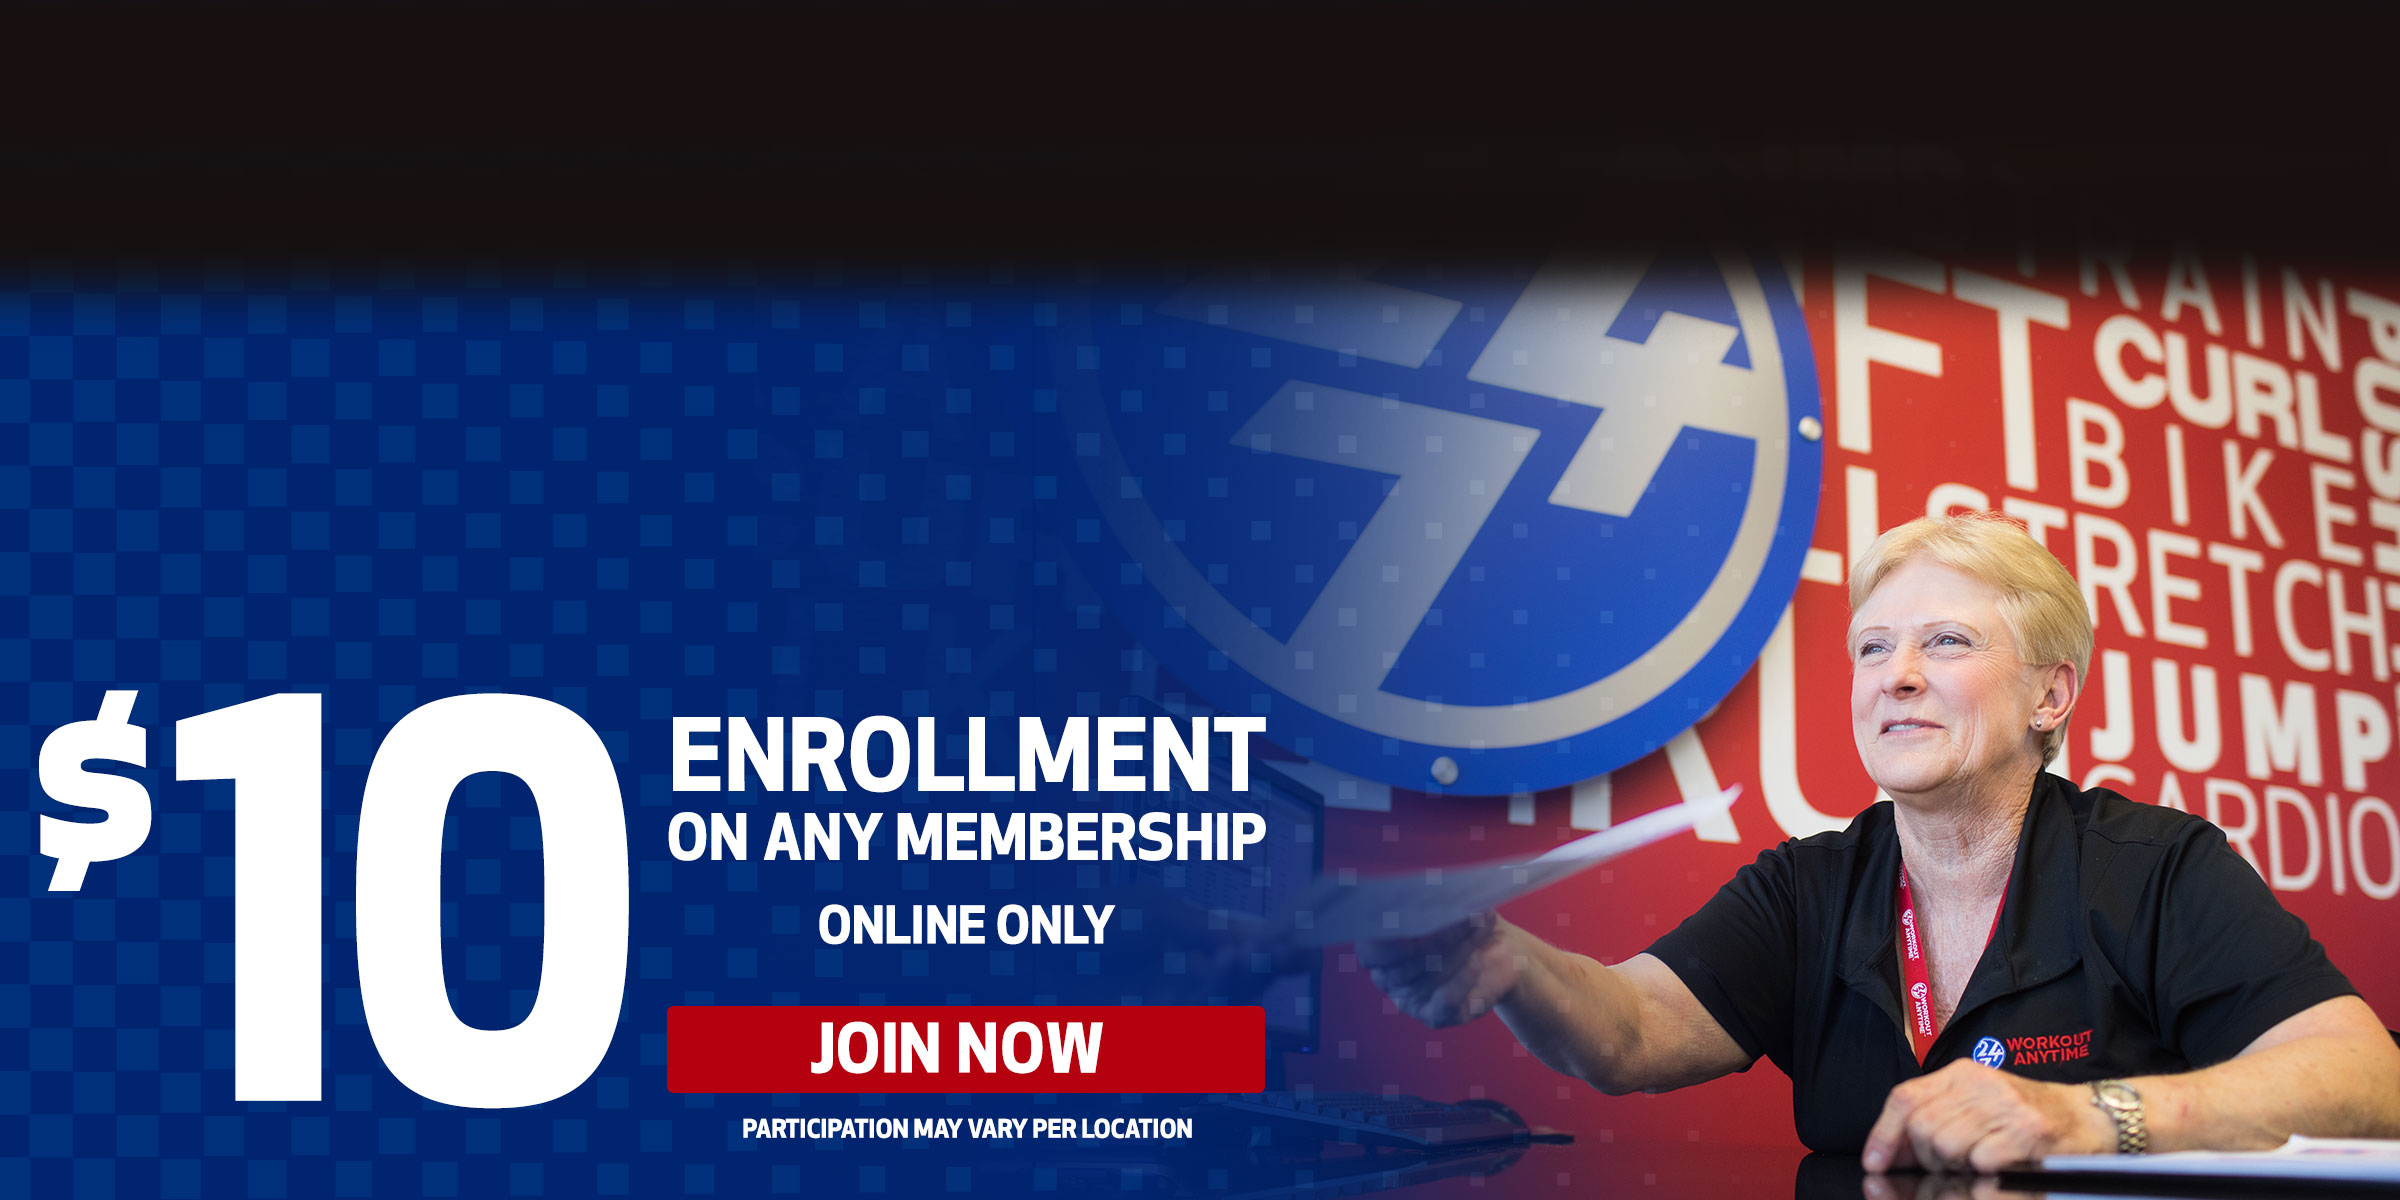 $10 Enrollment on Any Membership (Online Only) — JOIN NOW